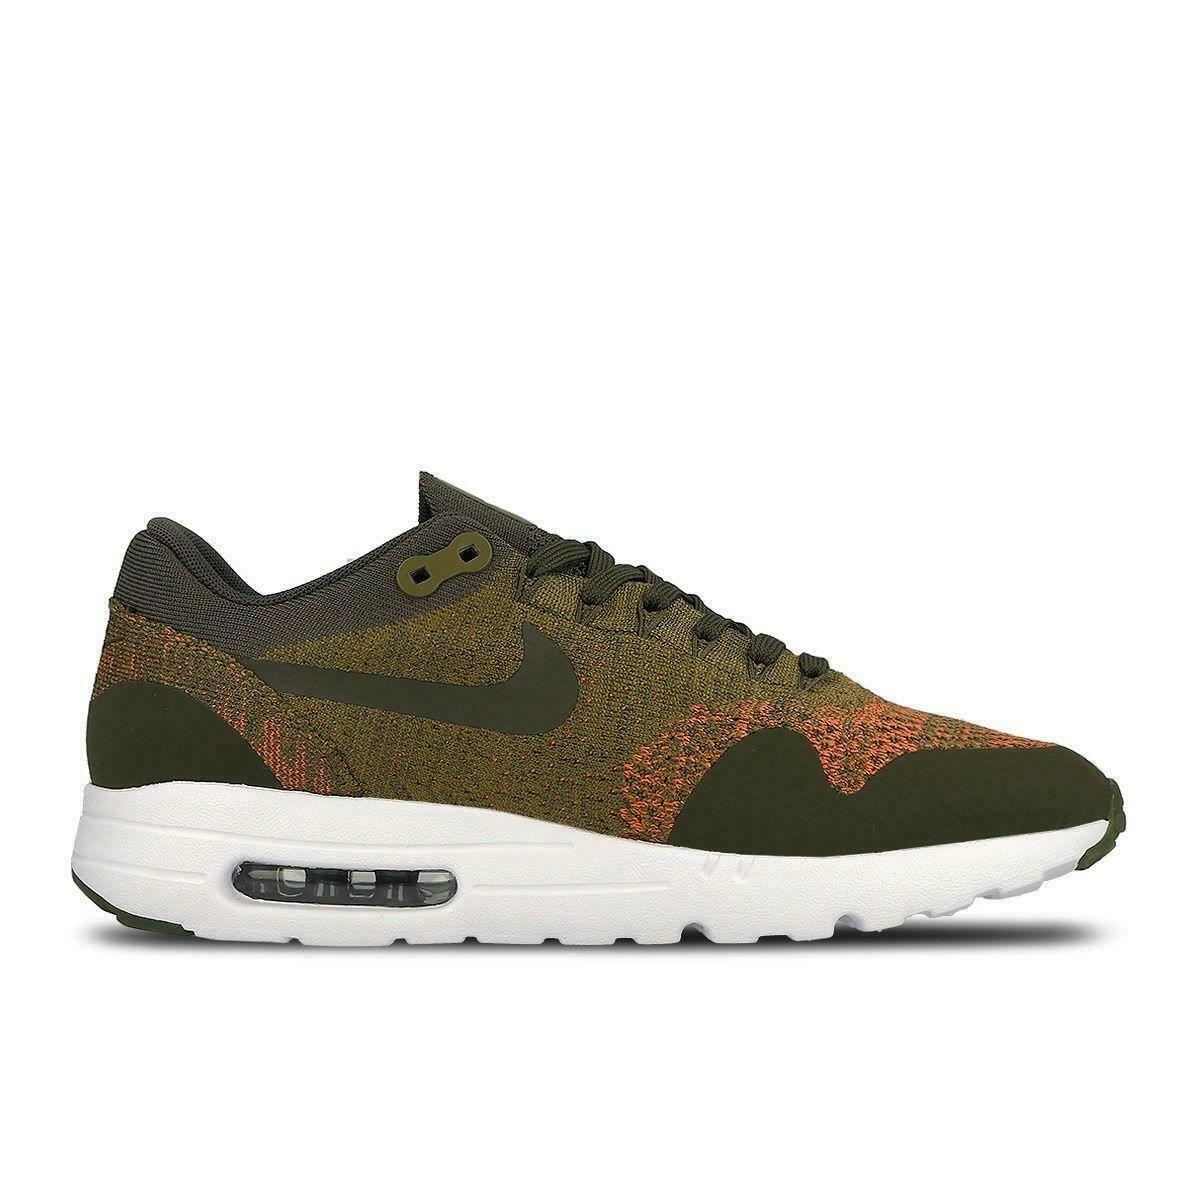 Mens NIKE AIR MAX 1 ULTRA FLYKNIT Olive Trainers 843384 300